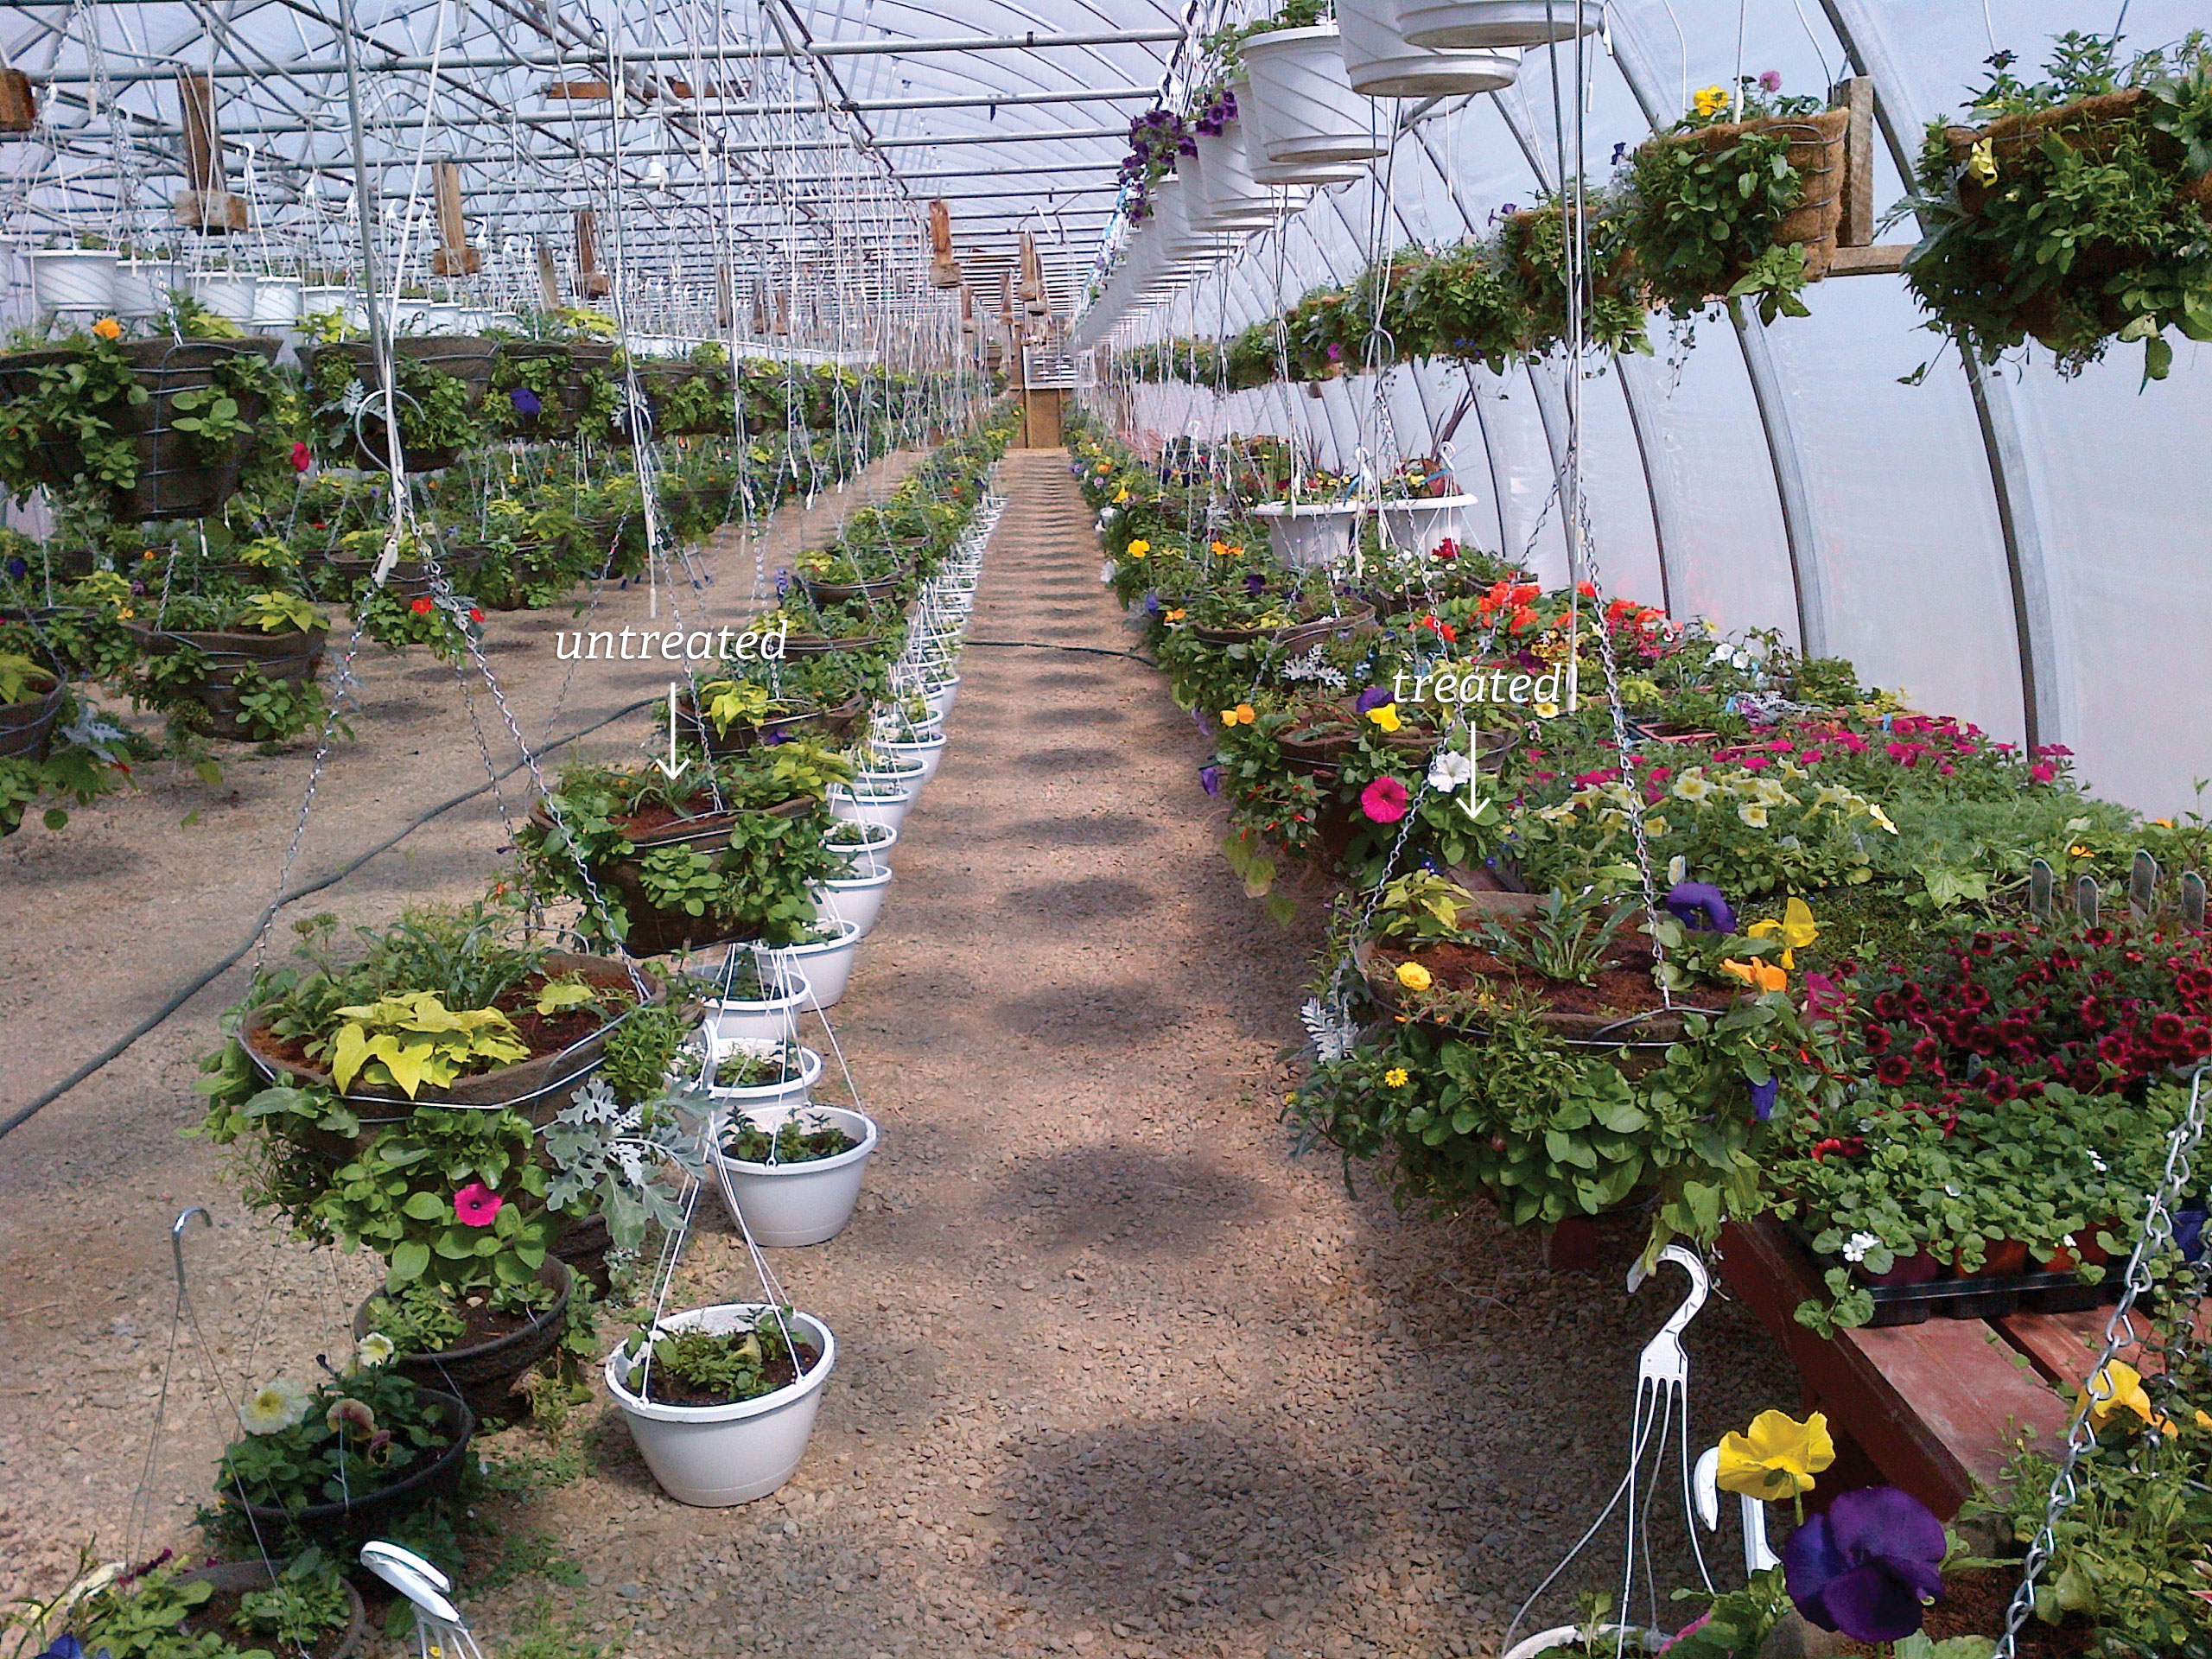 SumaGrow treated nursery flowers compared with untreated